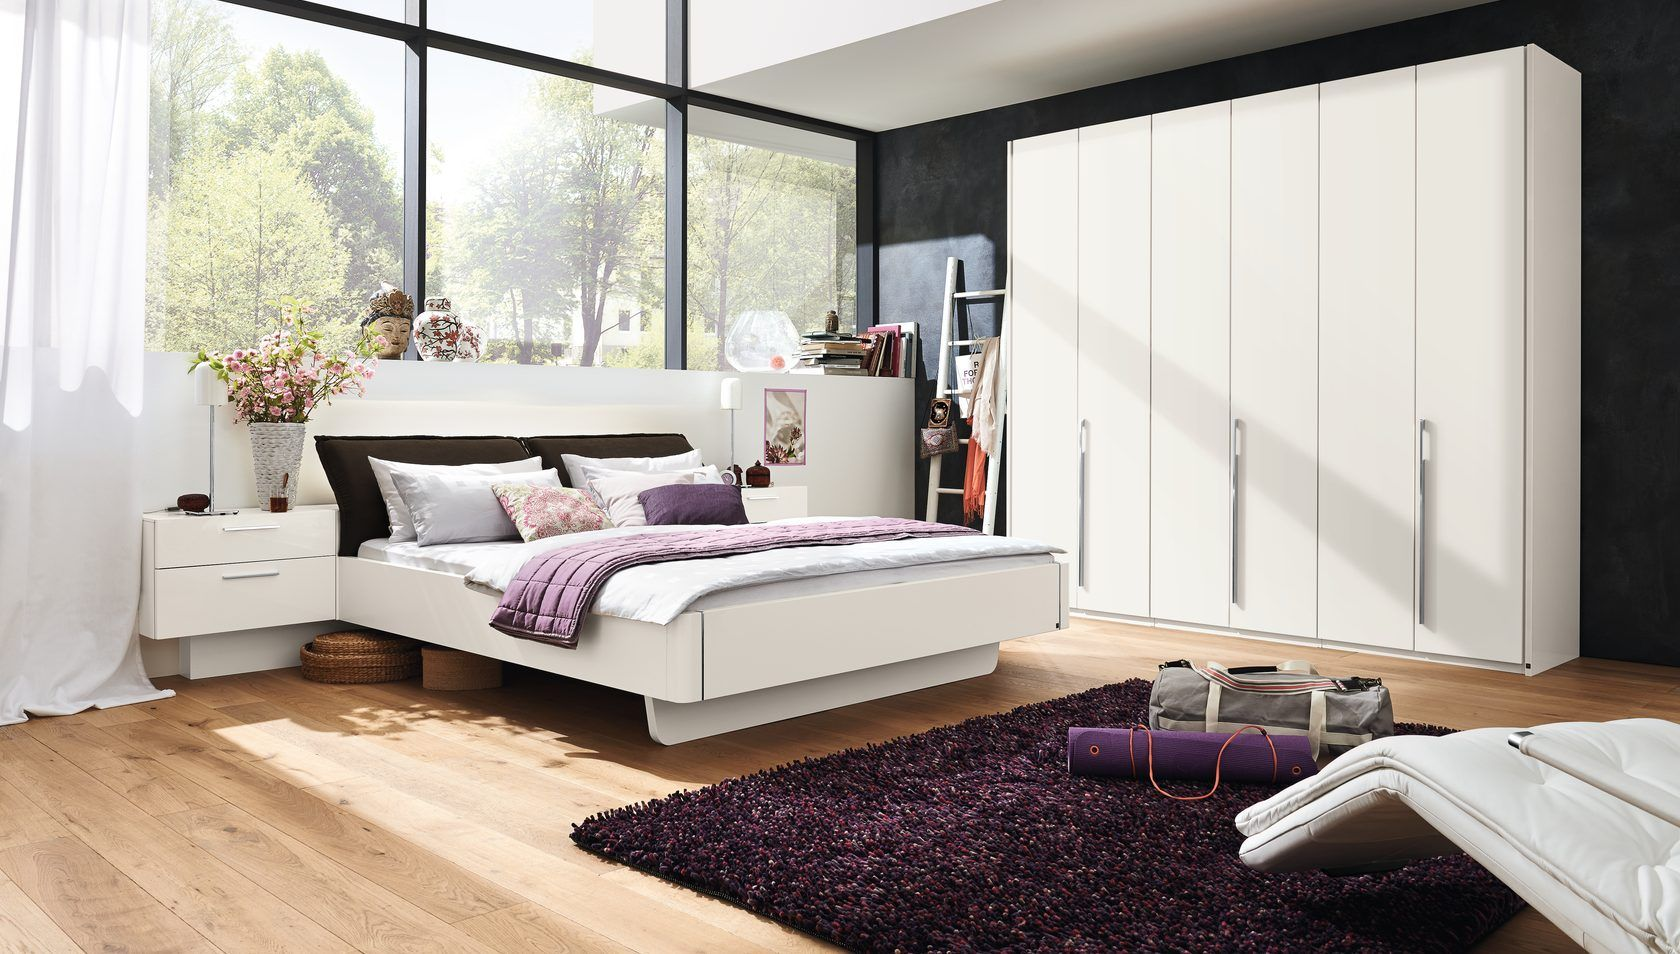 Musterring Schlafzimmerschrank ~ Musterring en en collection bedrooms bedrooms acero